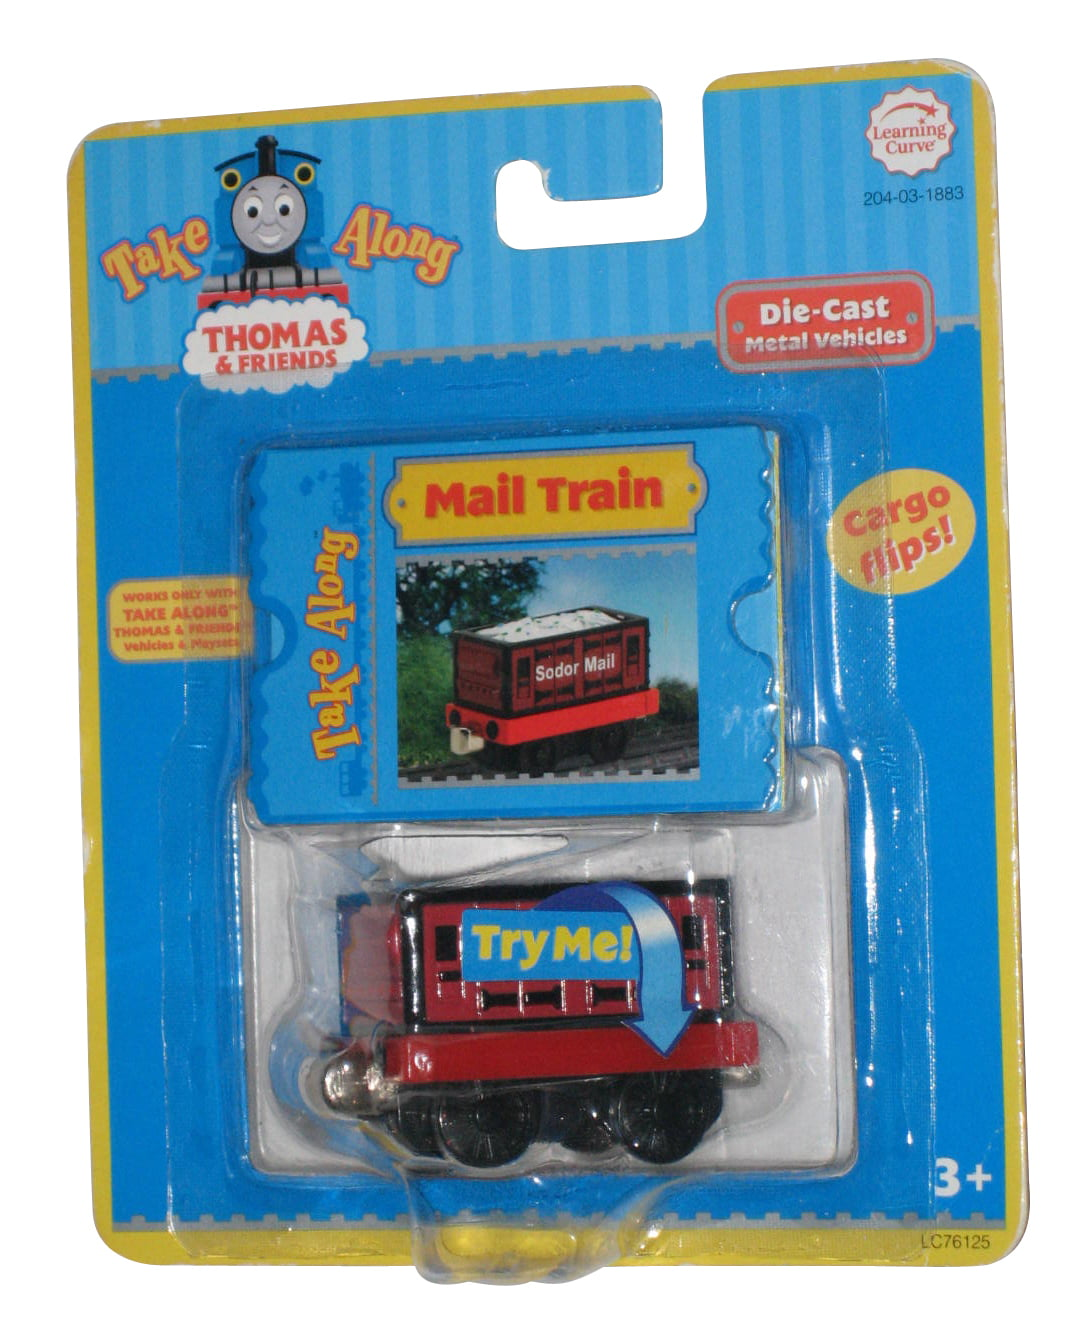 Thomas and His Friends Train Engines Cars Magnet Metal Diecast Collect Gift Toy